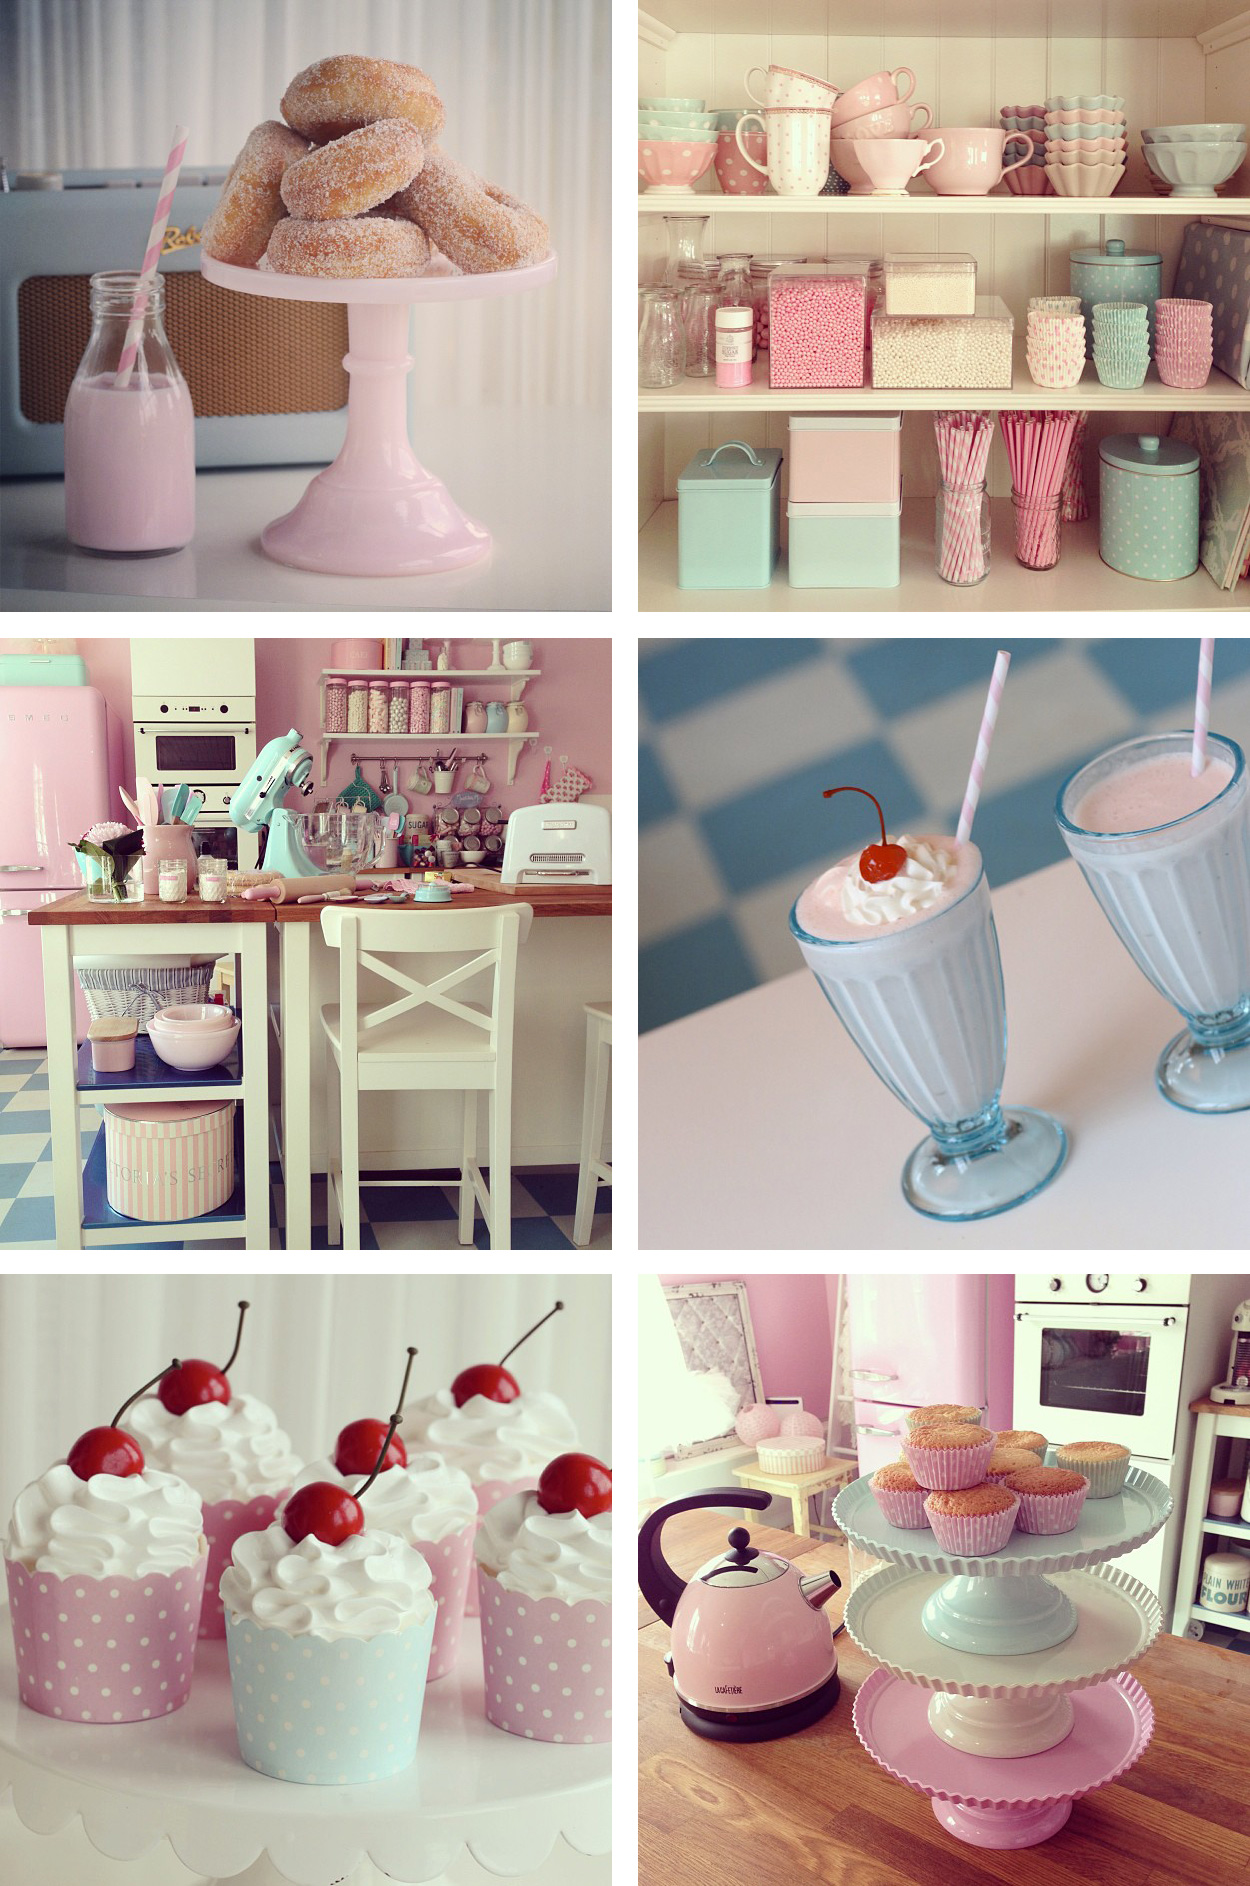 Deco cuisine rose pale: photo decoration rose avec pinterest ...